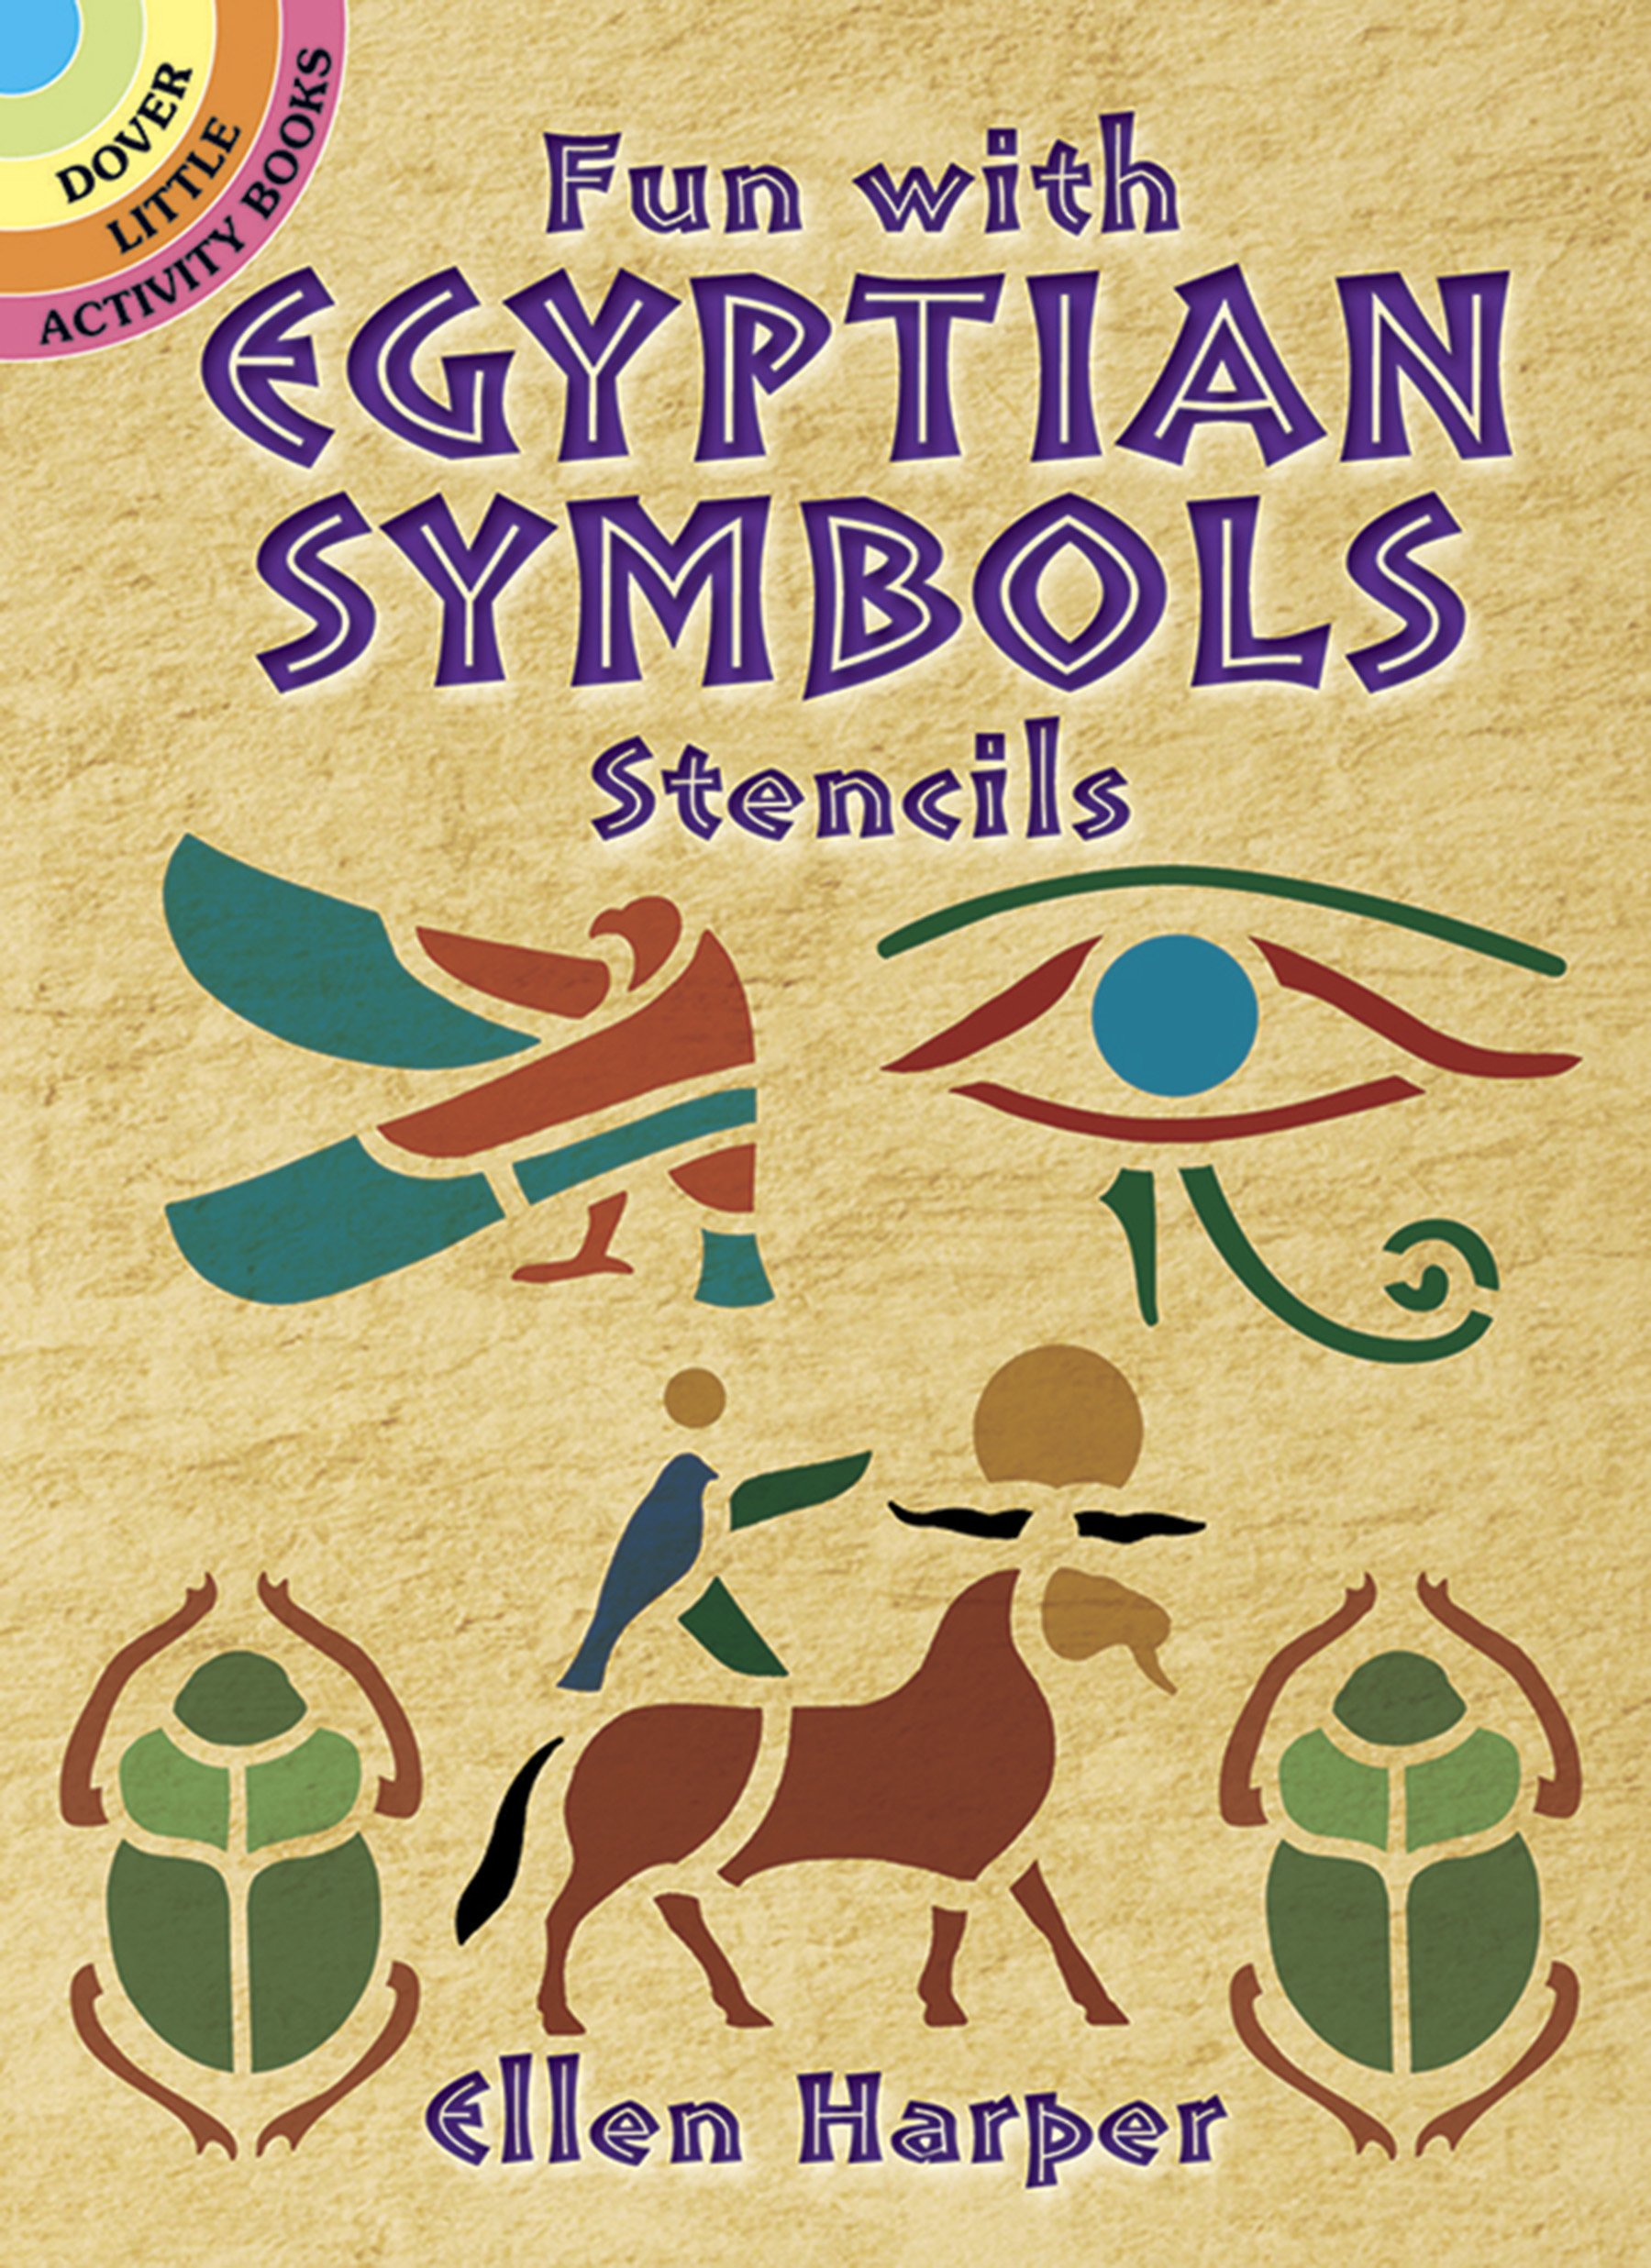 Fun with egyptian symbols stencils dover stencils ellen harper fun with egyptian symbols stencils dover stencils ellen harper 0800759431090 amazon books buycottarizona Images